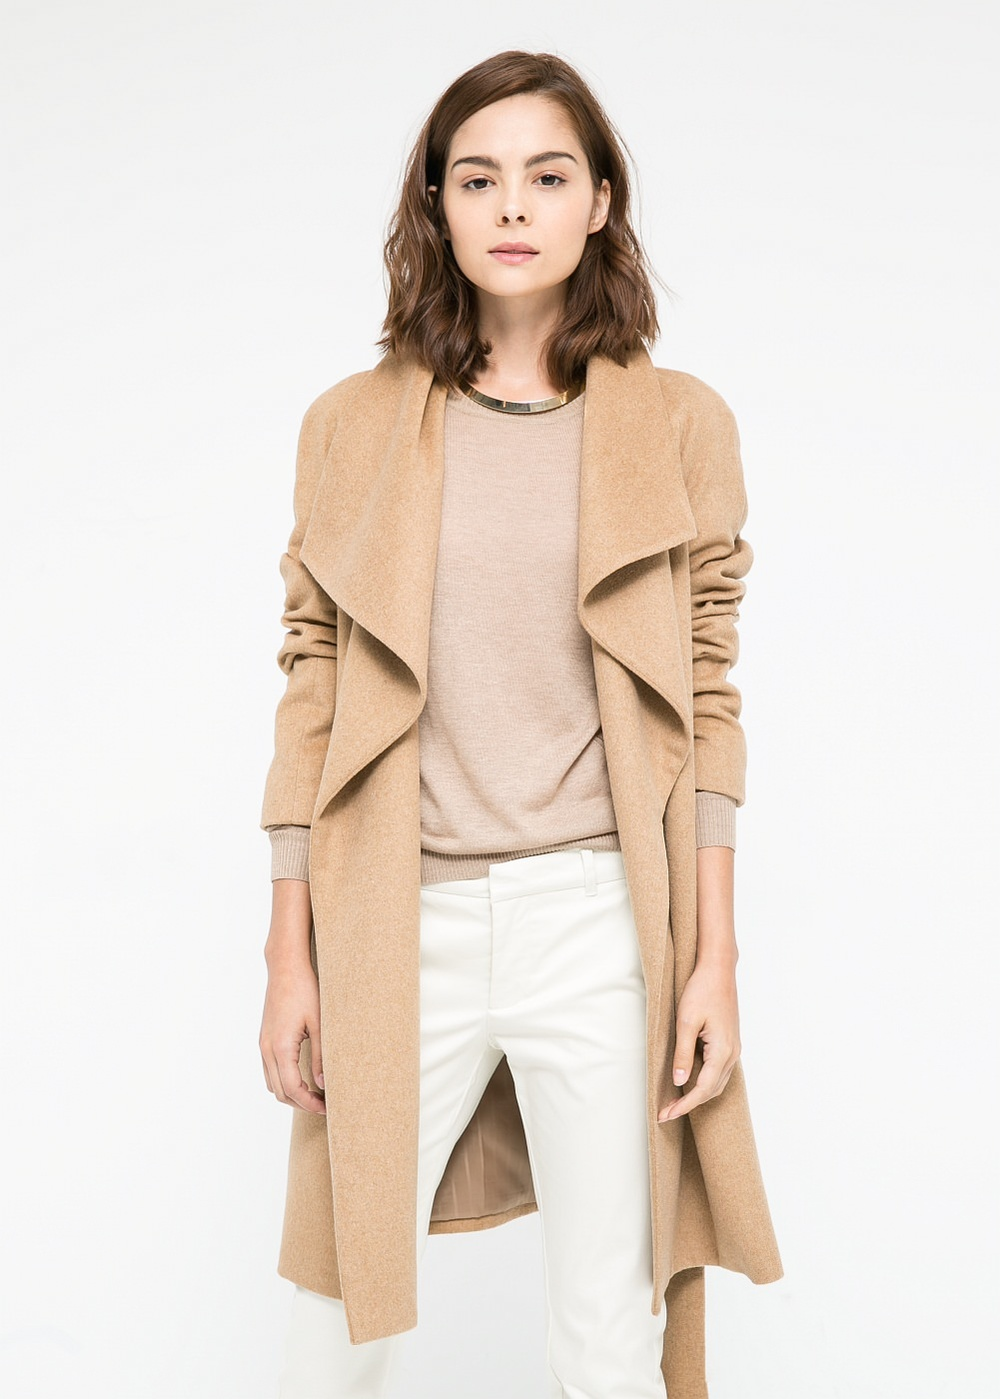 #34: Retail Therapy: Mango's Lapels Wool-Blend Coat